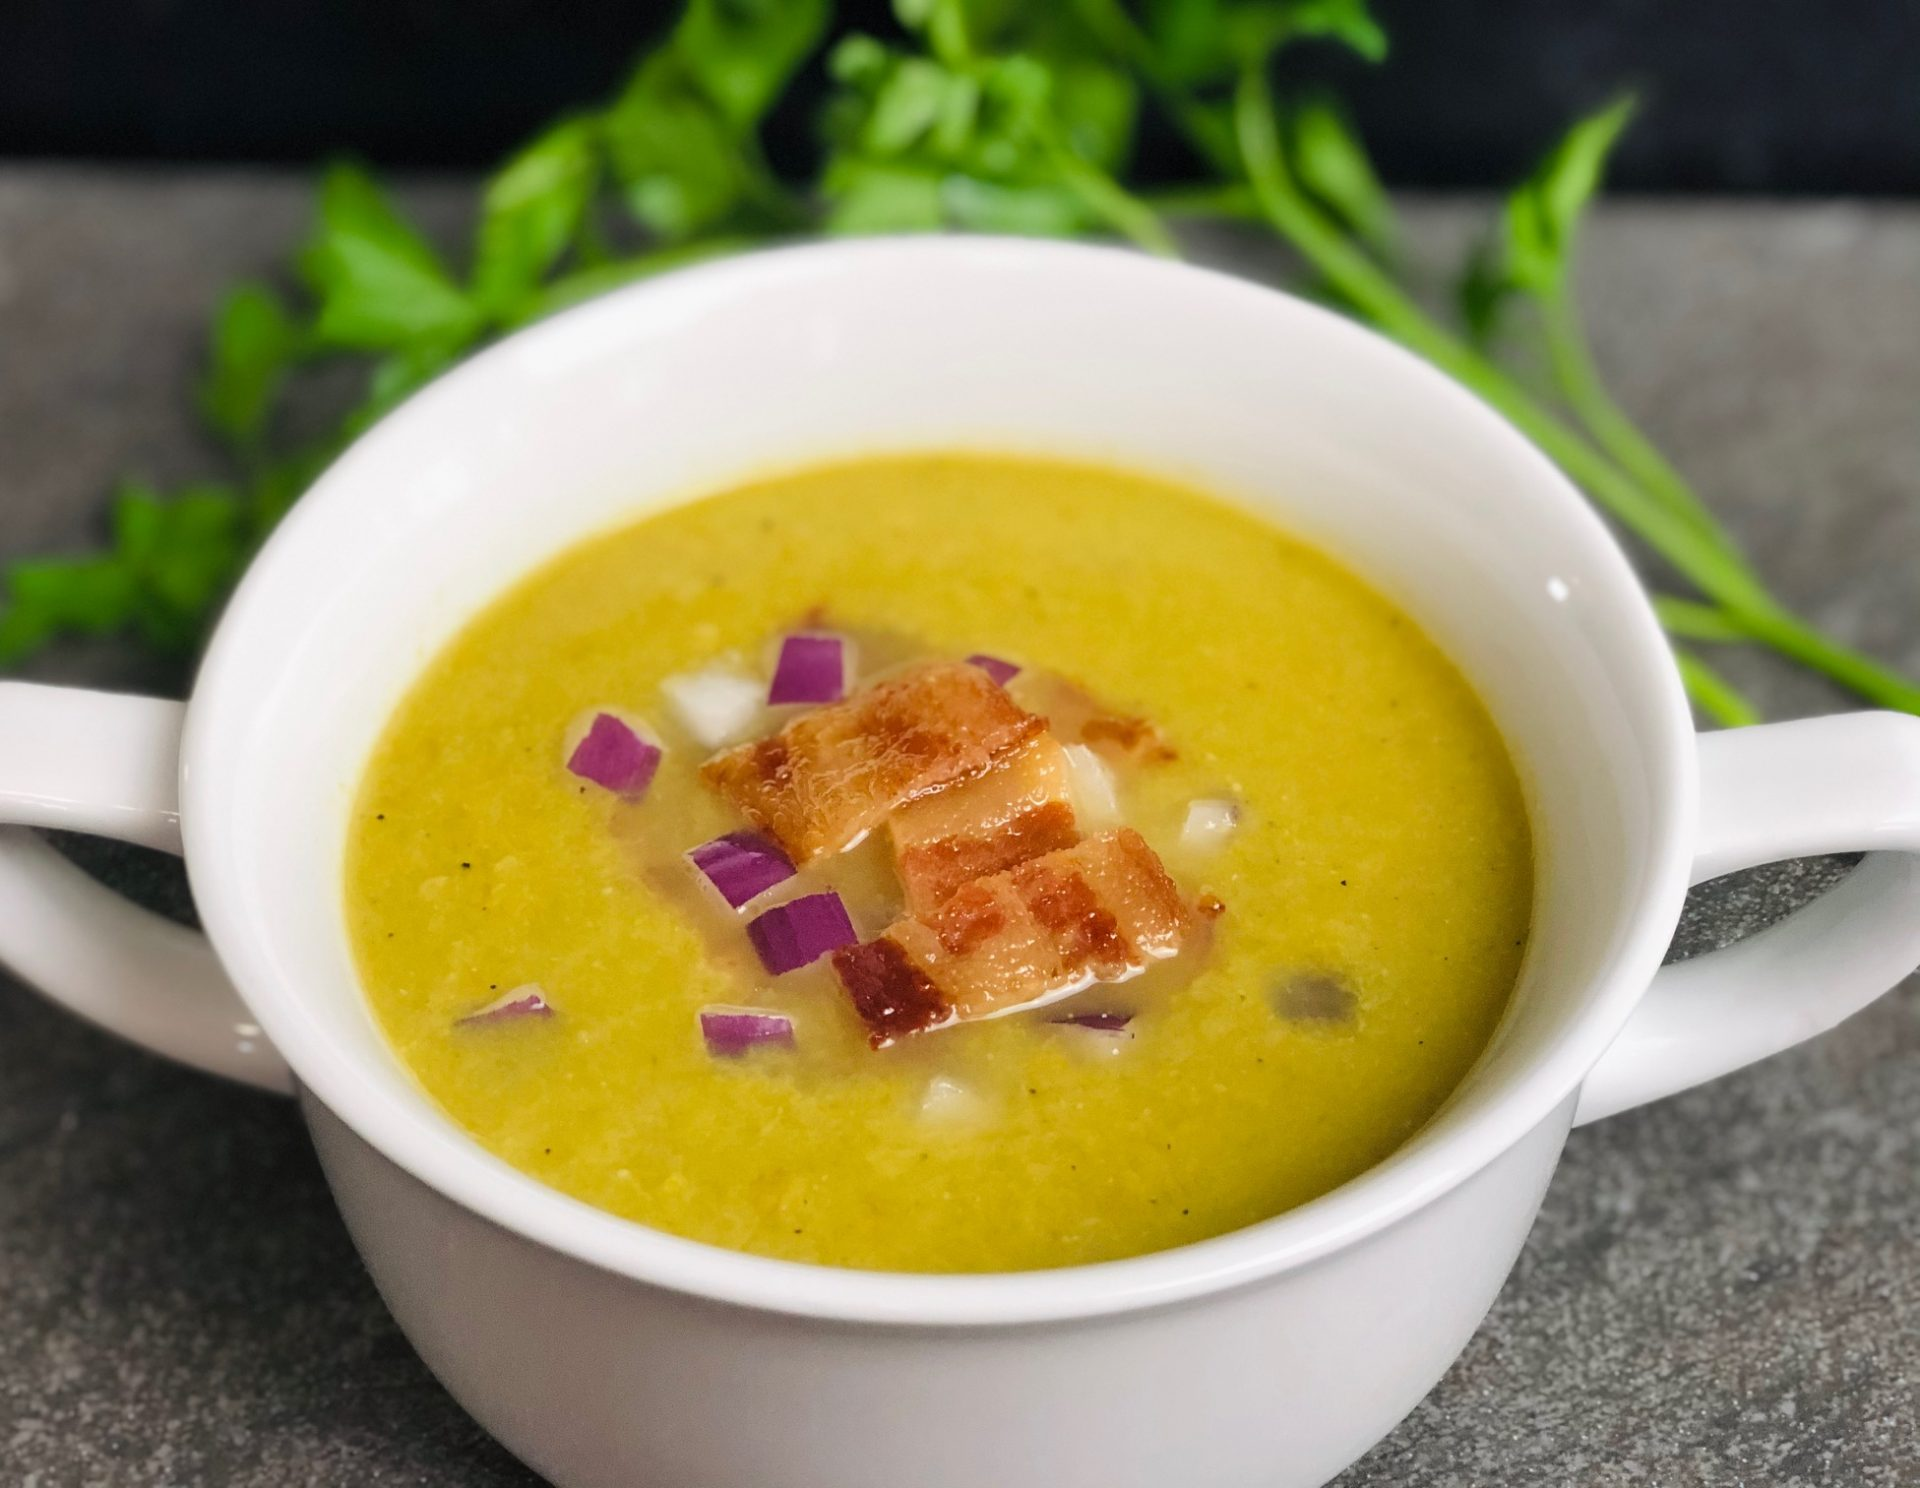 creamy-asparagus-soup-recipe-heather-lucilles-kitchen-food-blog